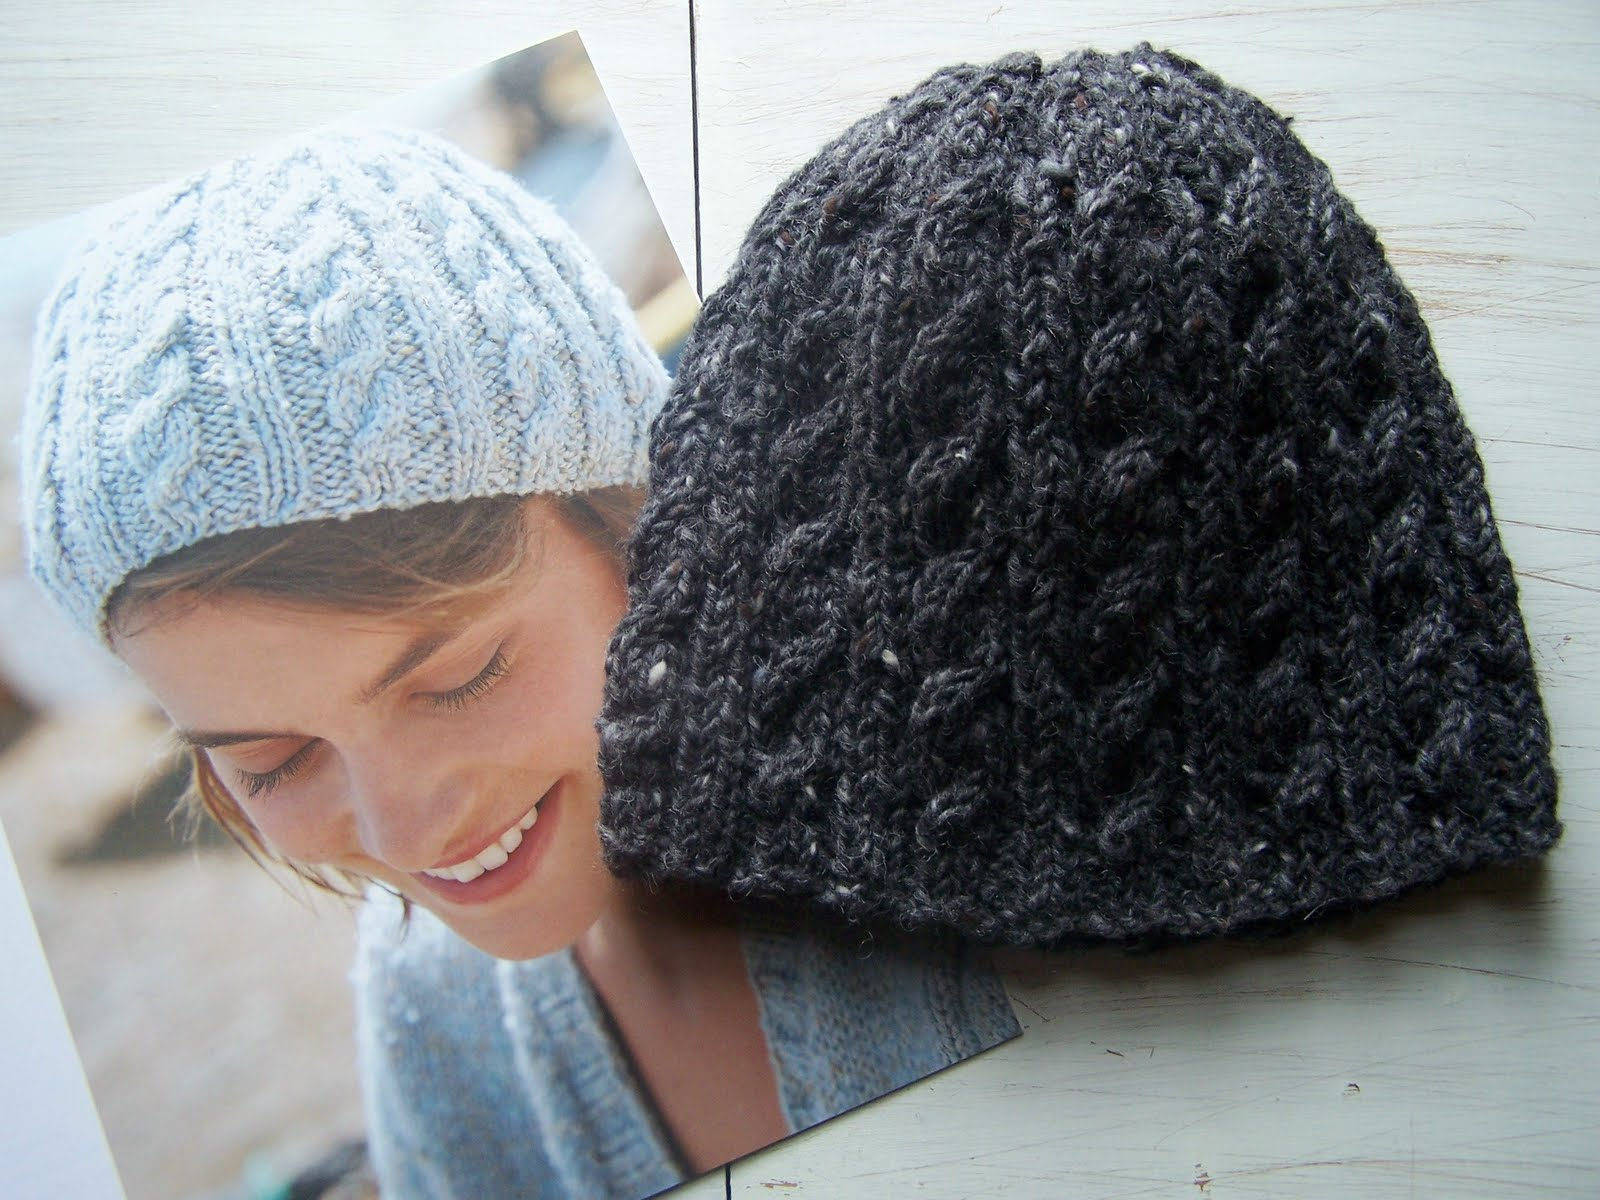 Knitting Patterns For Hats Using Circular Needles : Knitting Patterns For Hats Without Circular Needles